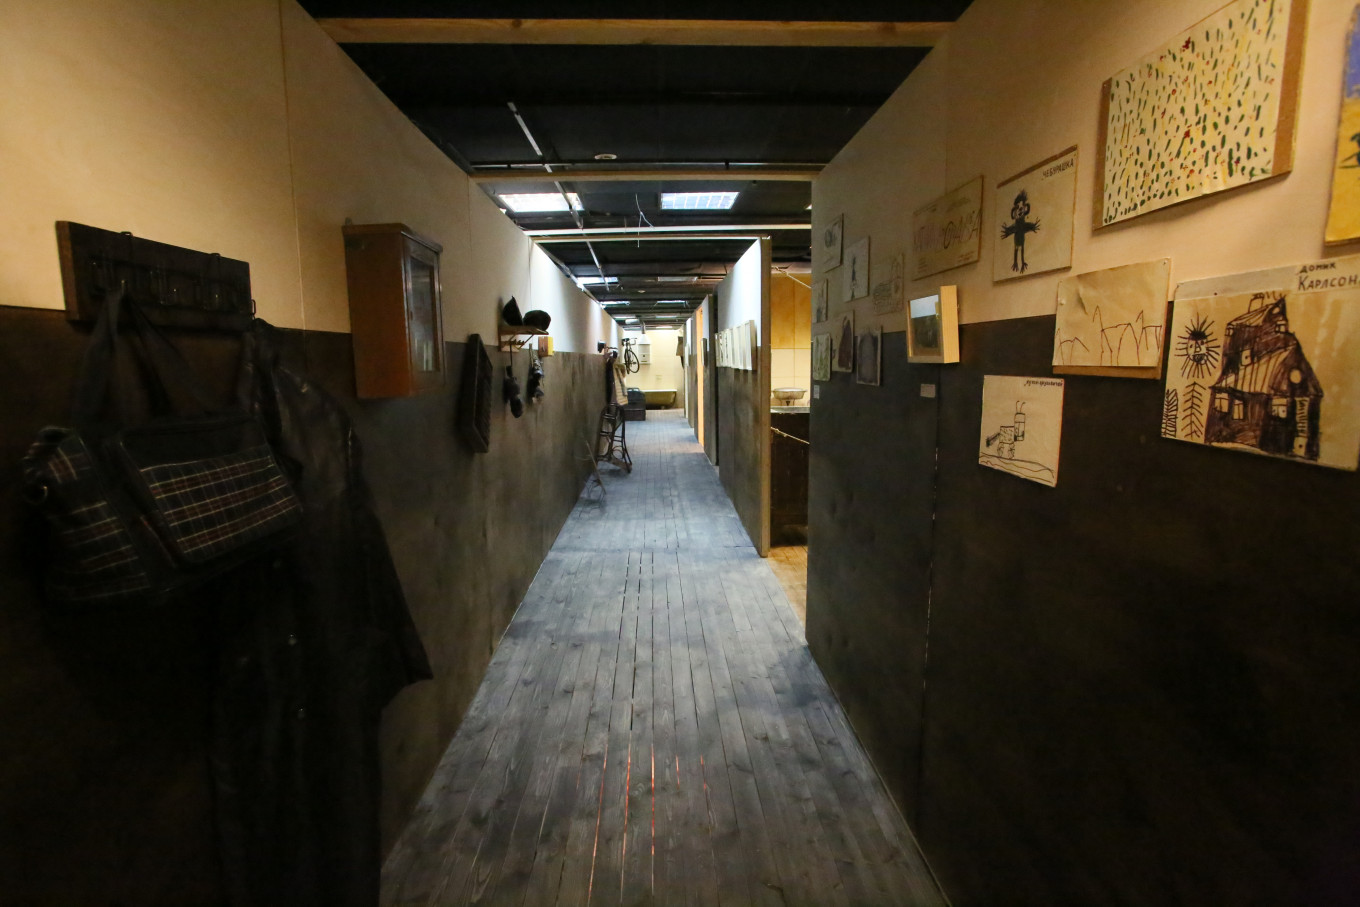 A long communal apartment hallway familiar to many older Muscovites. Museum of Moscow Press Service